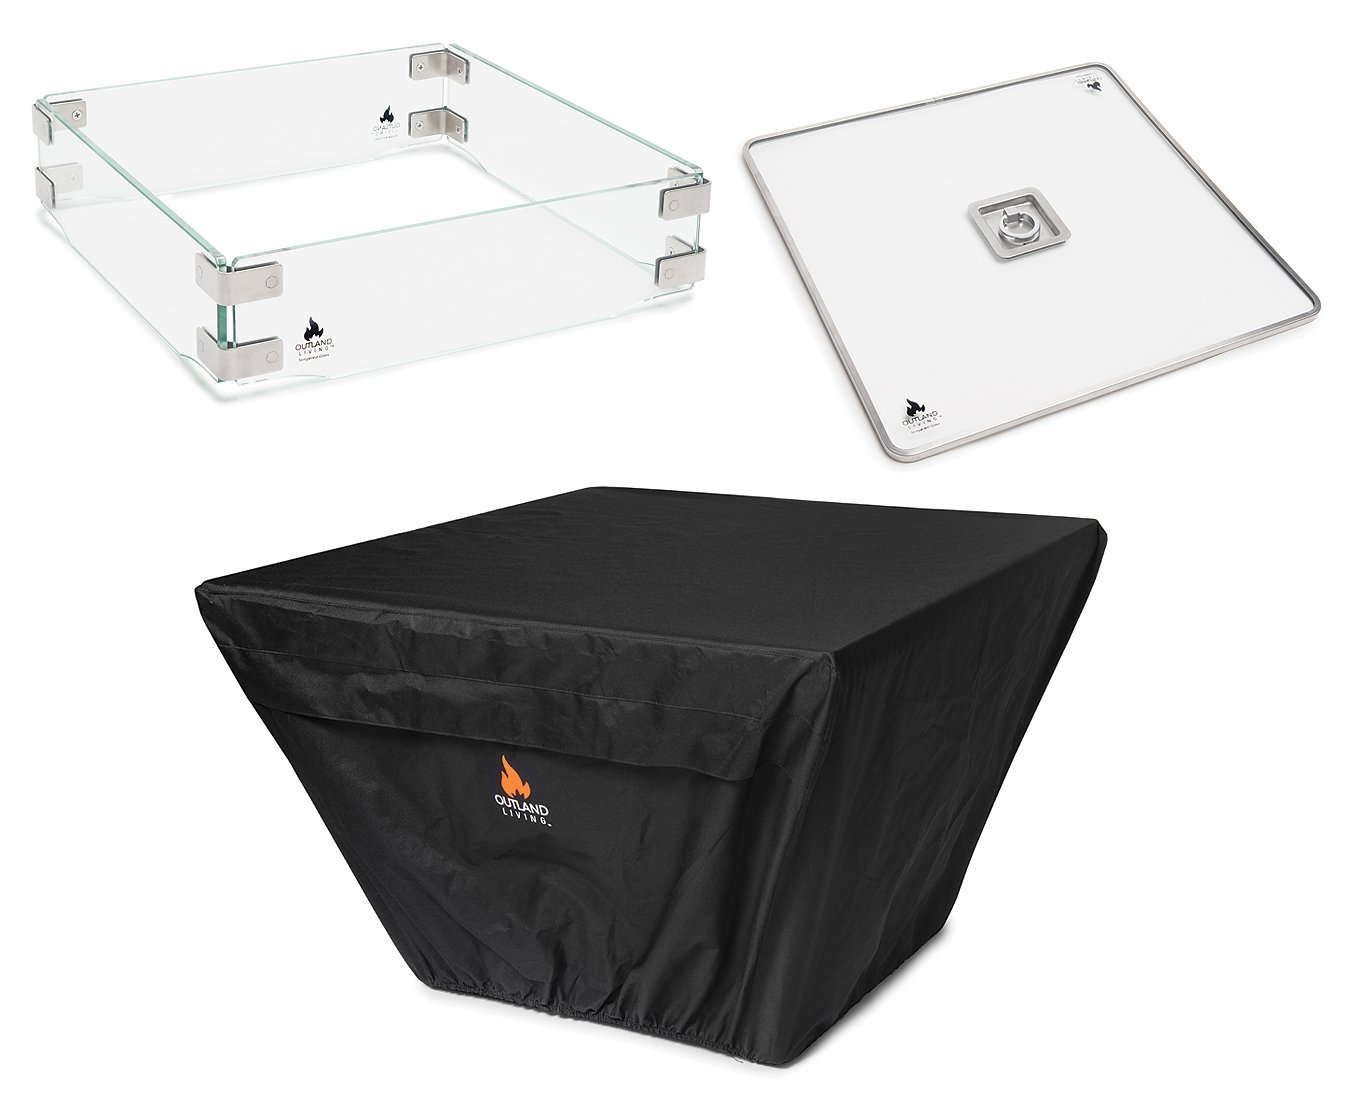 Outland Fire Table 3 Piece Square Accessory Set of Tempered Glass Lid Insert, Tempered Glass Wind Guard Fence, and UV & Water Resistant Durable Cover for 36-Inch Square Outland Series 410 Fire Tables